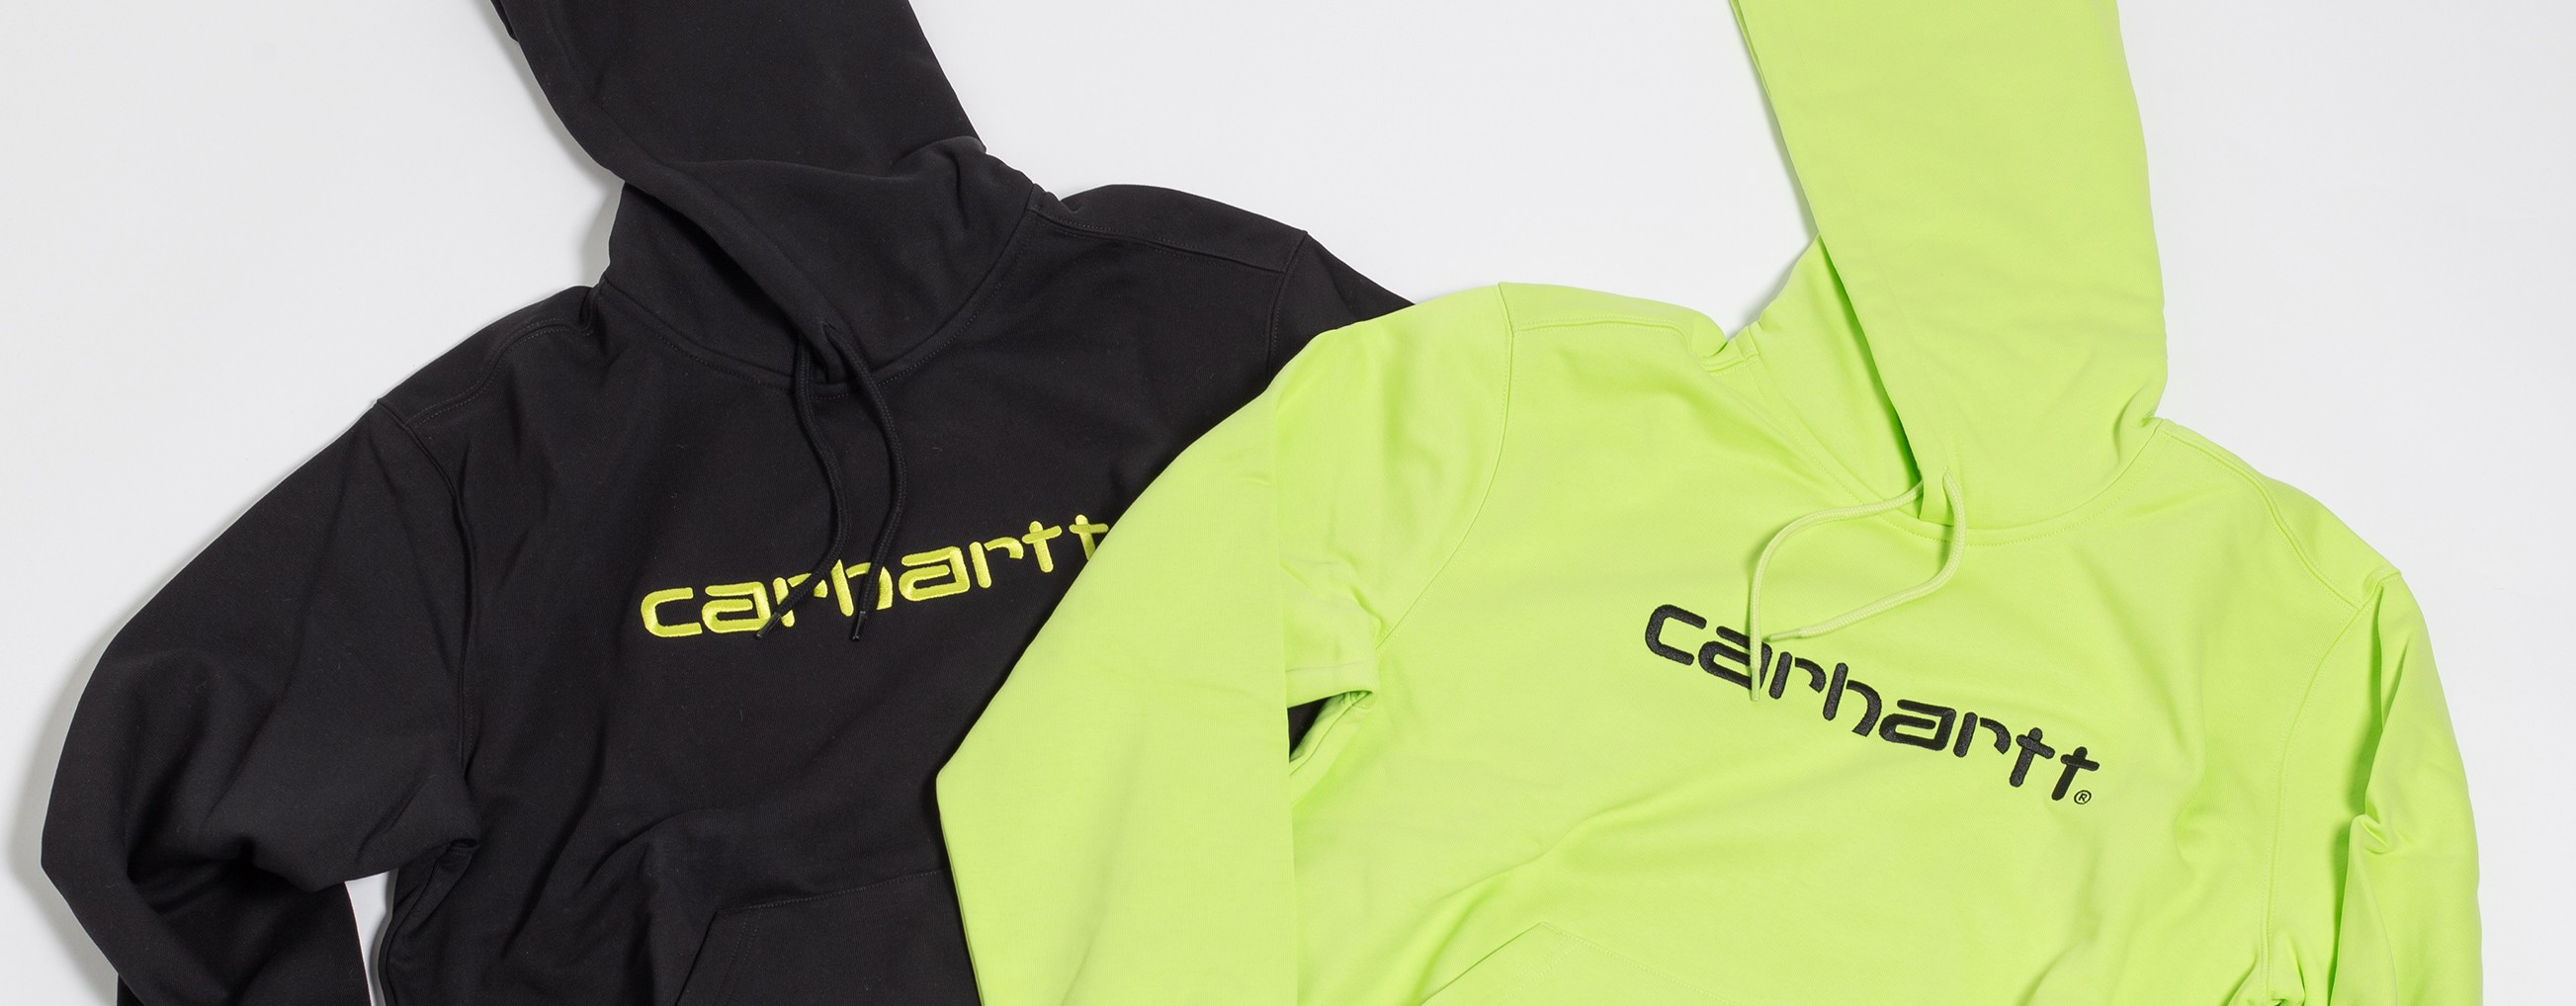 Carhartt Wip Spring / Summer Delivery 1